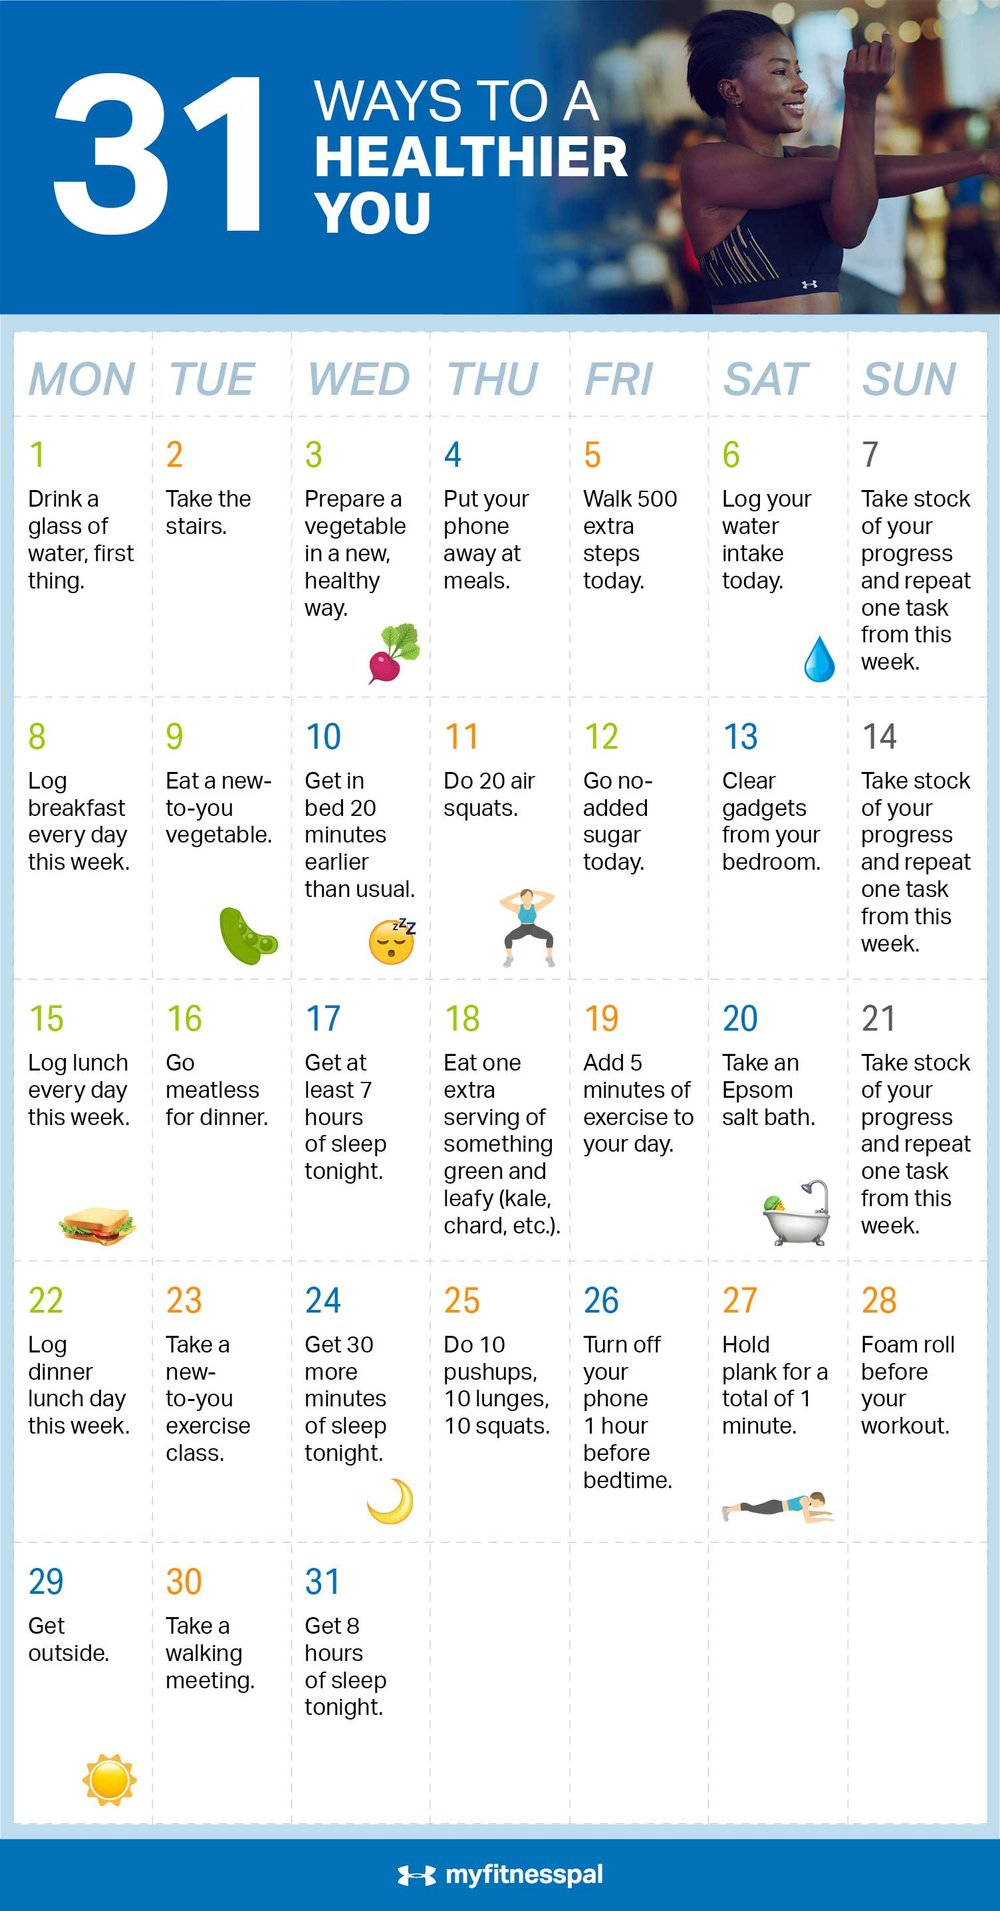 UACF-31-Ways-to-a-Healthier-You.jpg